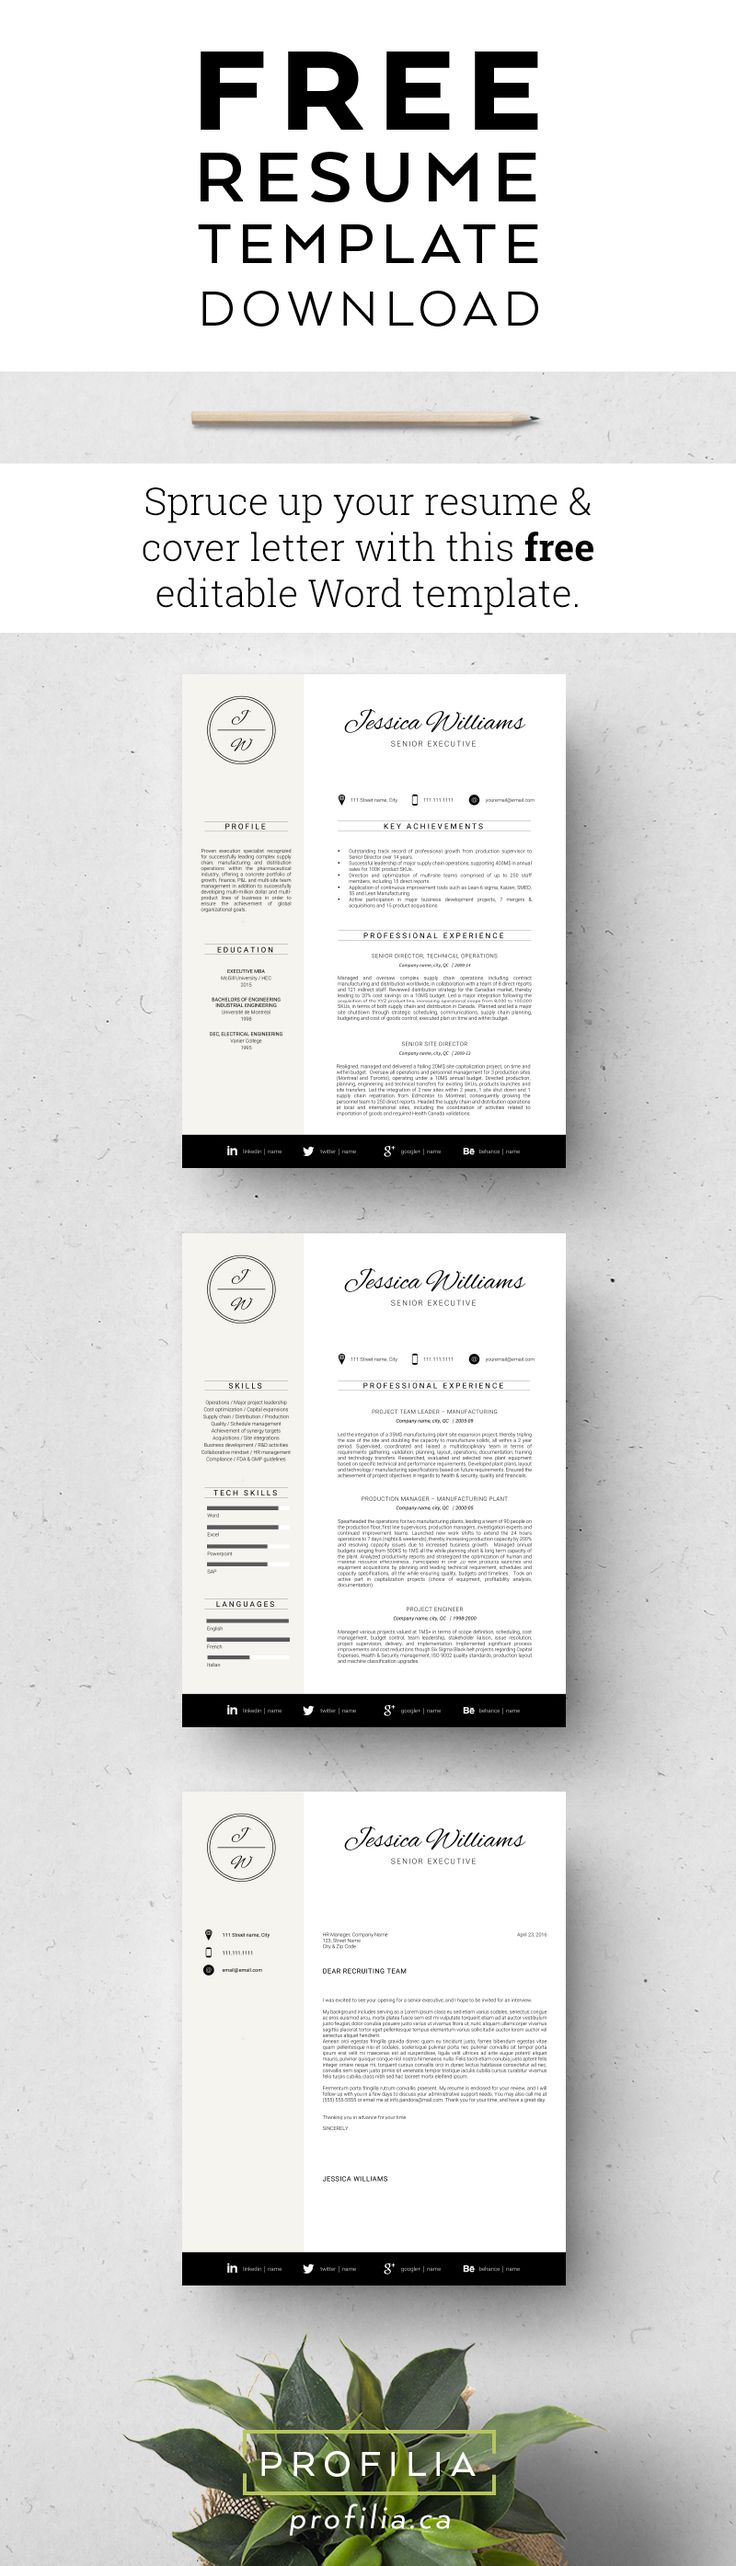 free resume template refresh your job search with this free resume cover - Cover Letter And Resume Template